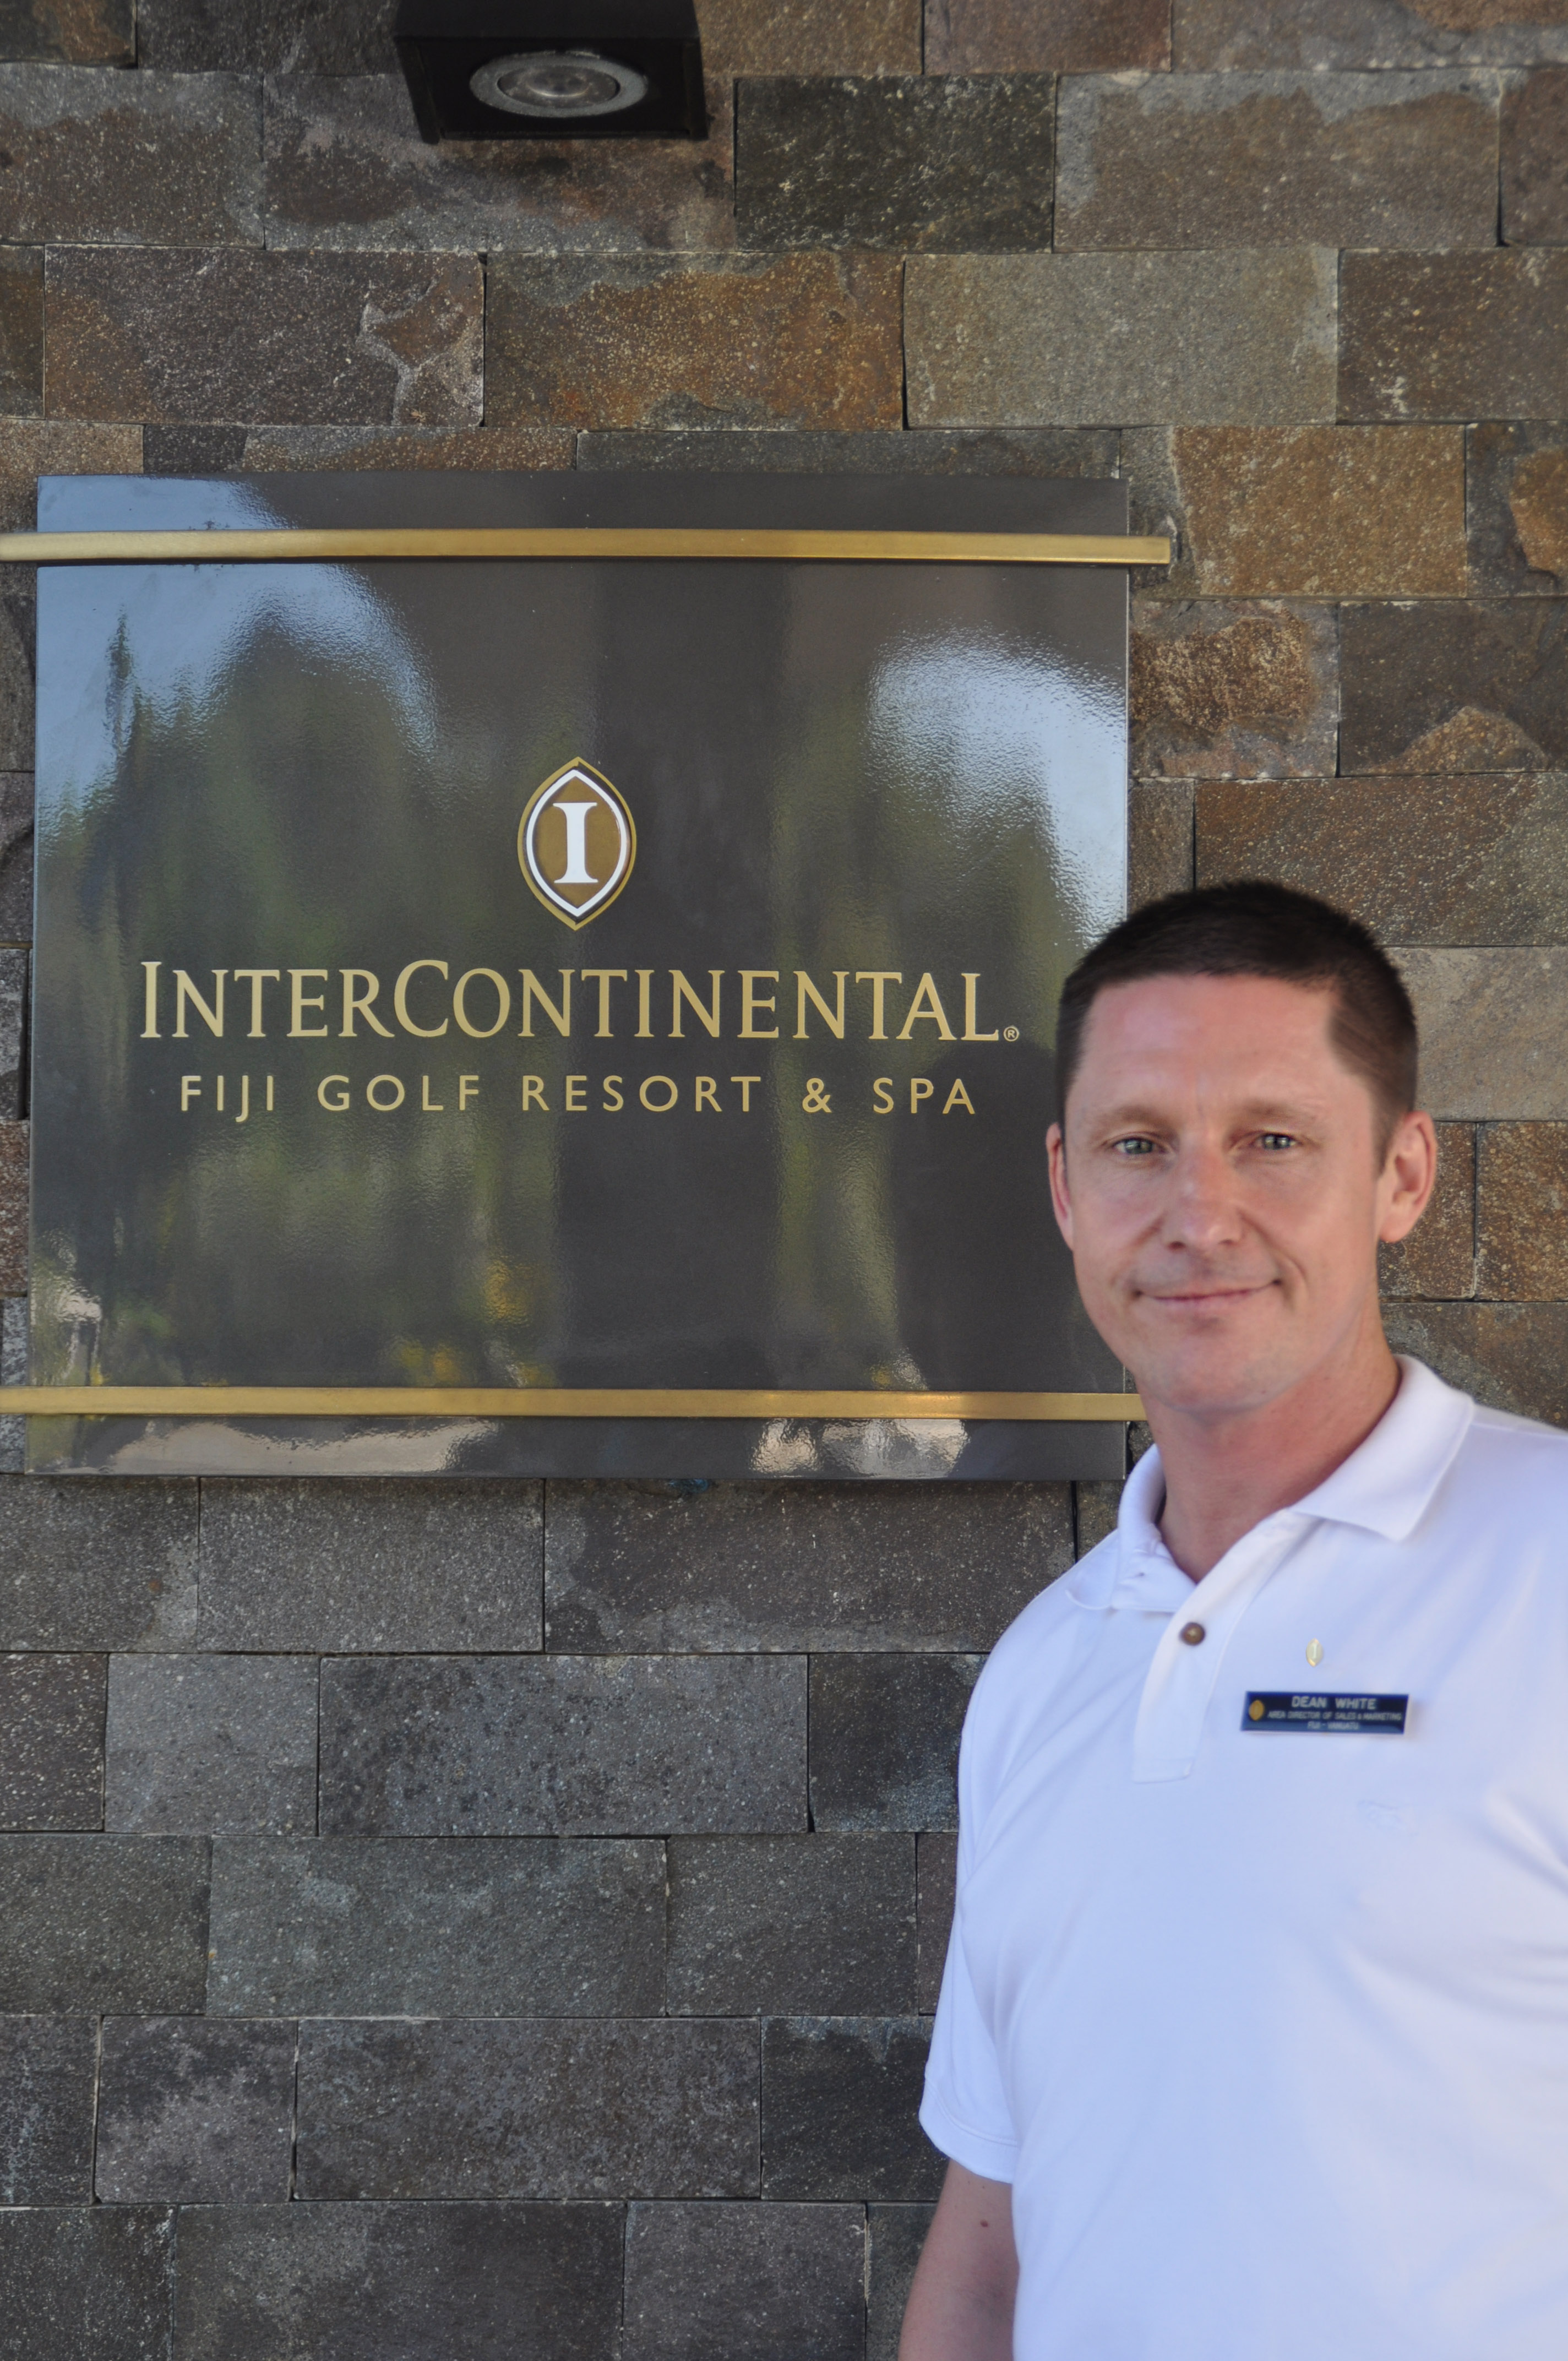 New Area Director of Sales & Marketing - Fiji & Vanuatu; Dean White at the InterContinental Fiji Golf Resort & Spa